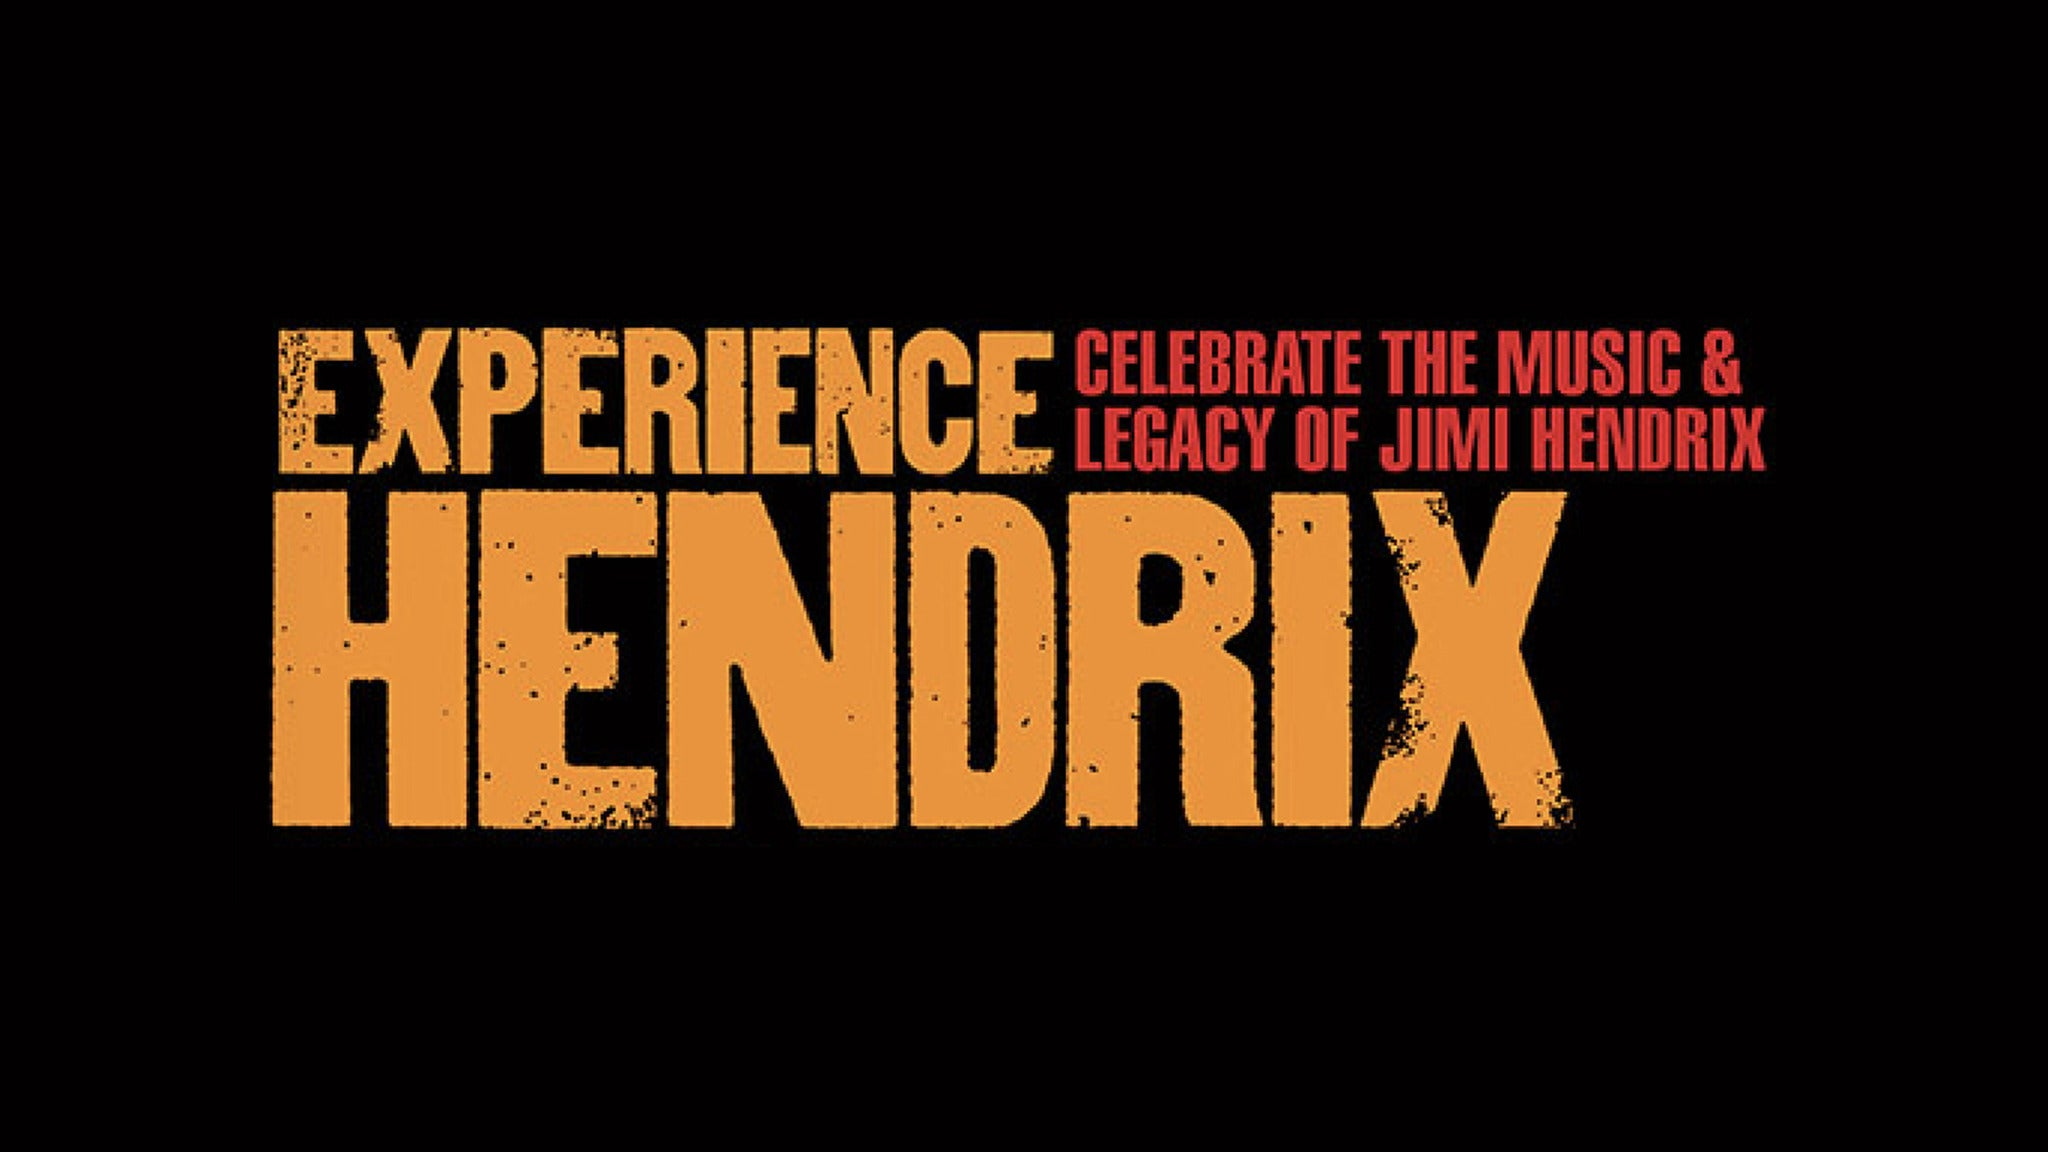 Experience Hendrix at 7 Clans First Council Casino Hotel